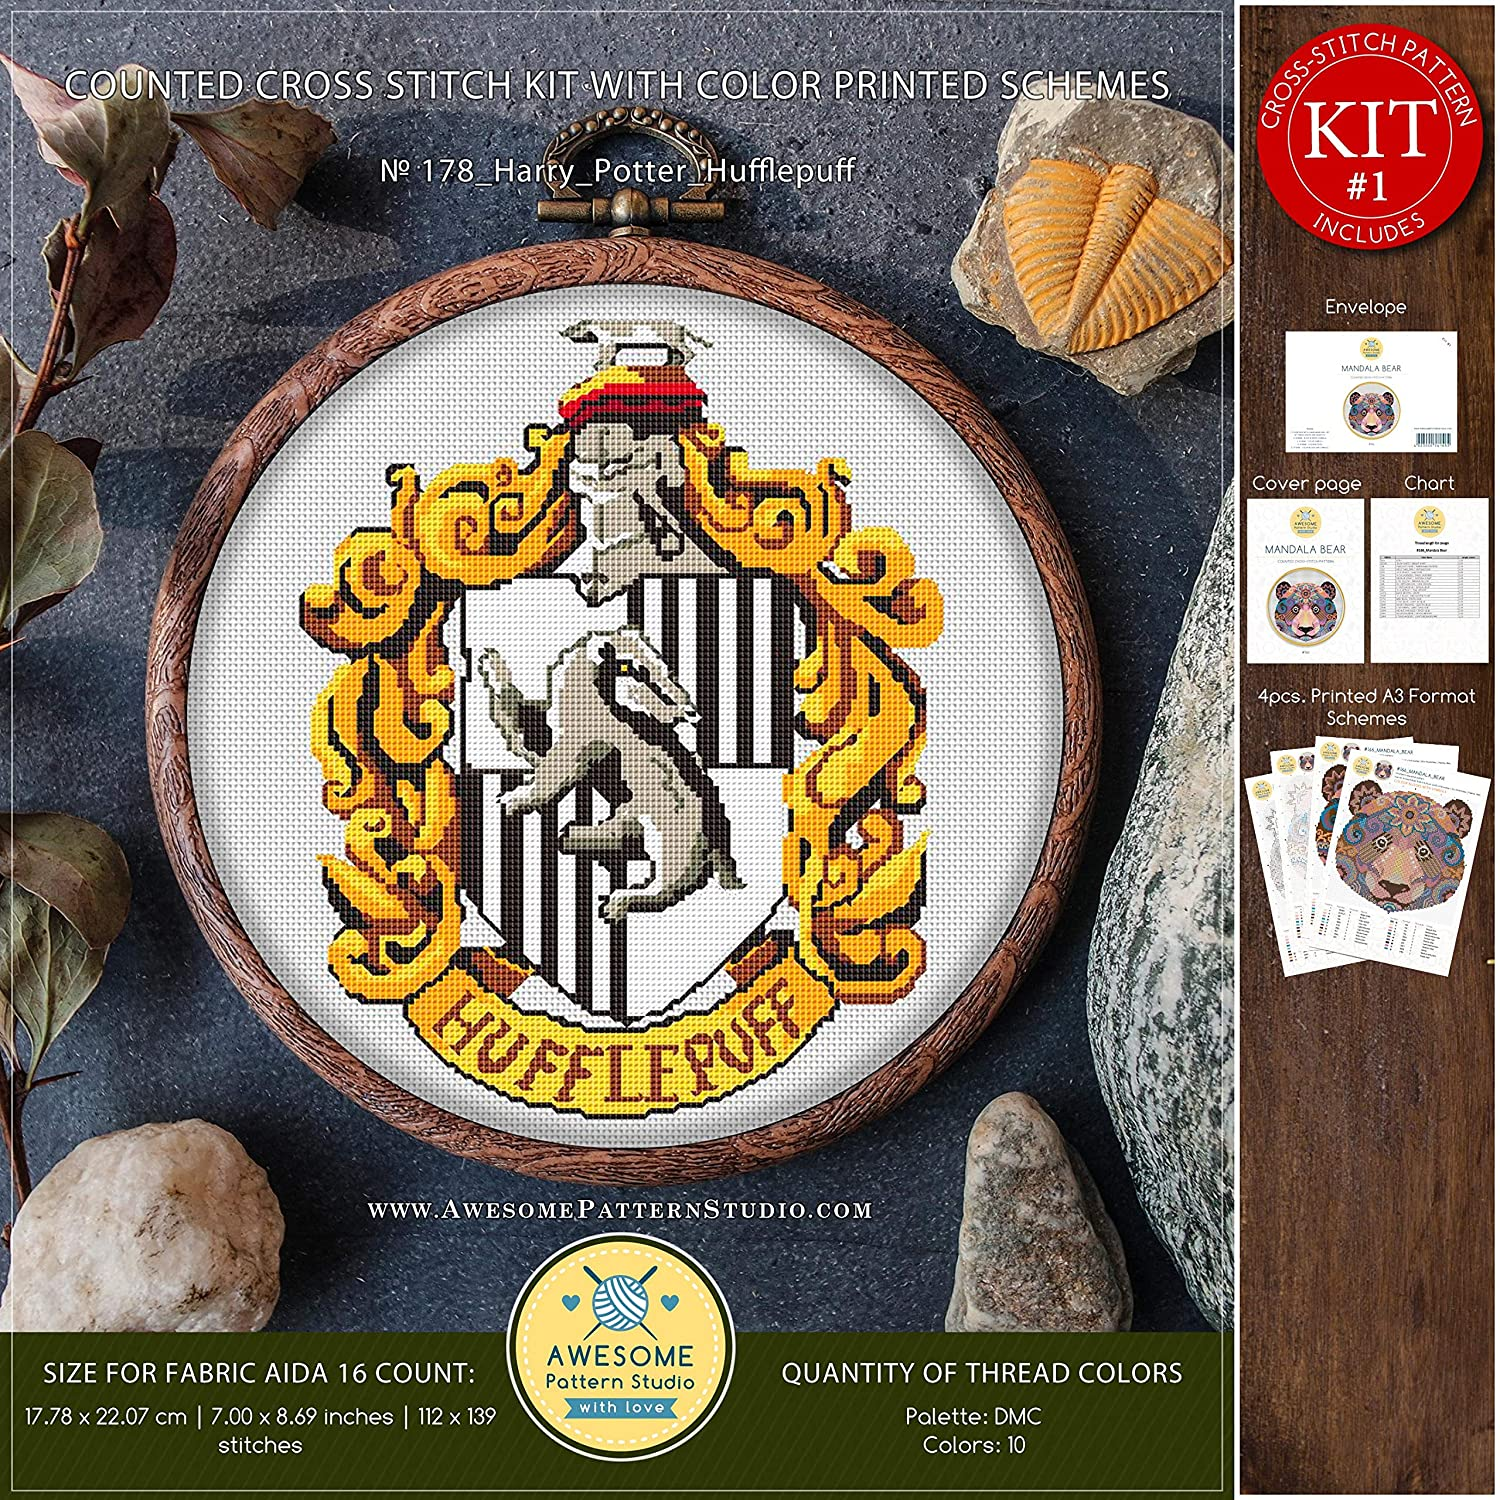 Harry Potter Hufflepuff #K178 Embroidery Kit How to Cross Stitch Kids Cross Stitch Patterns Needlepoint Kits Embroidery Designs